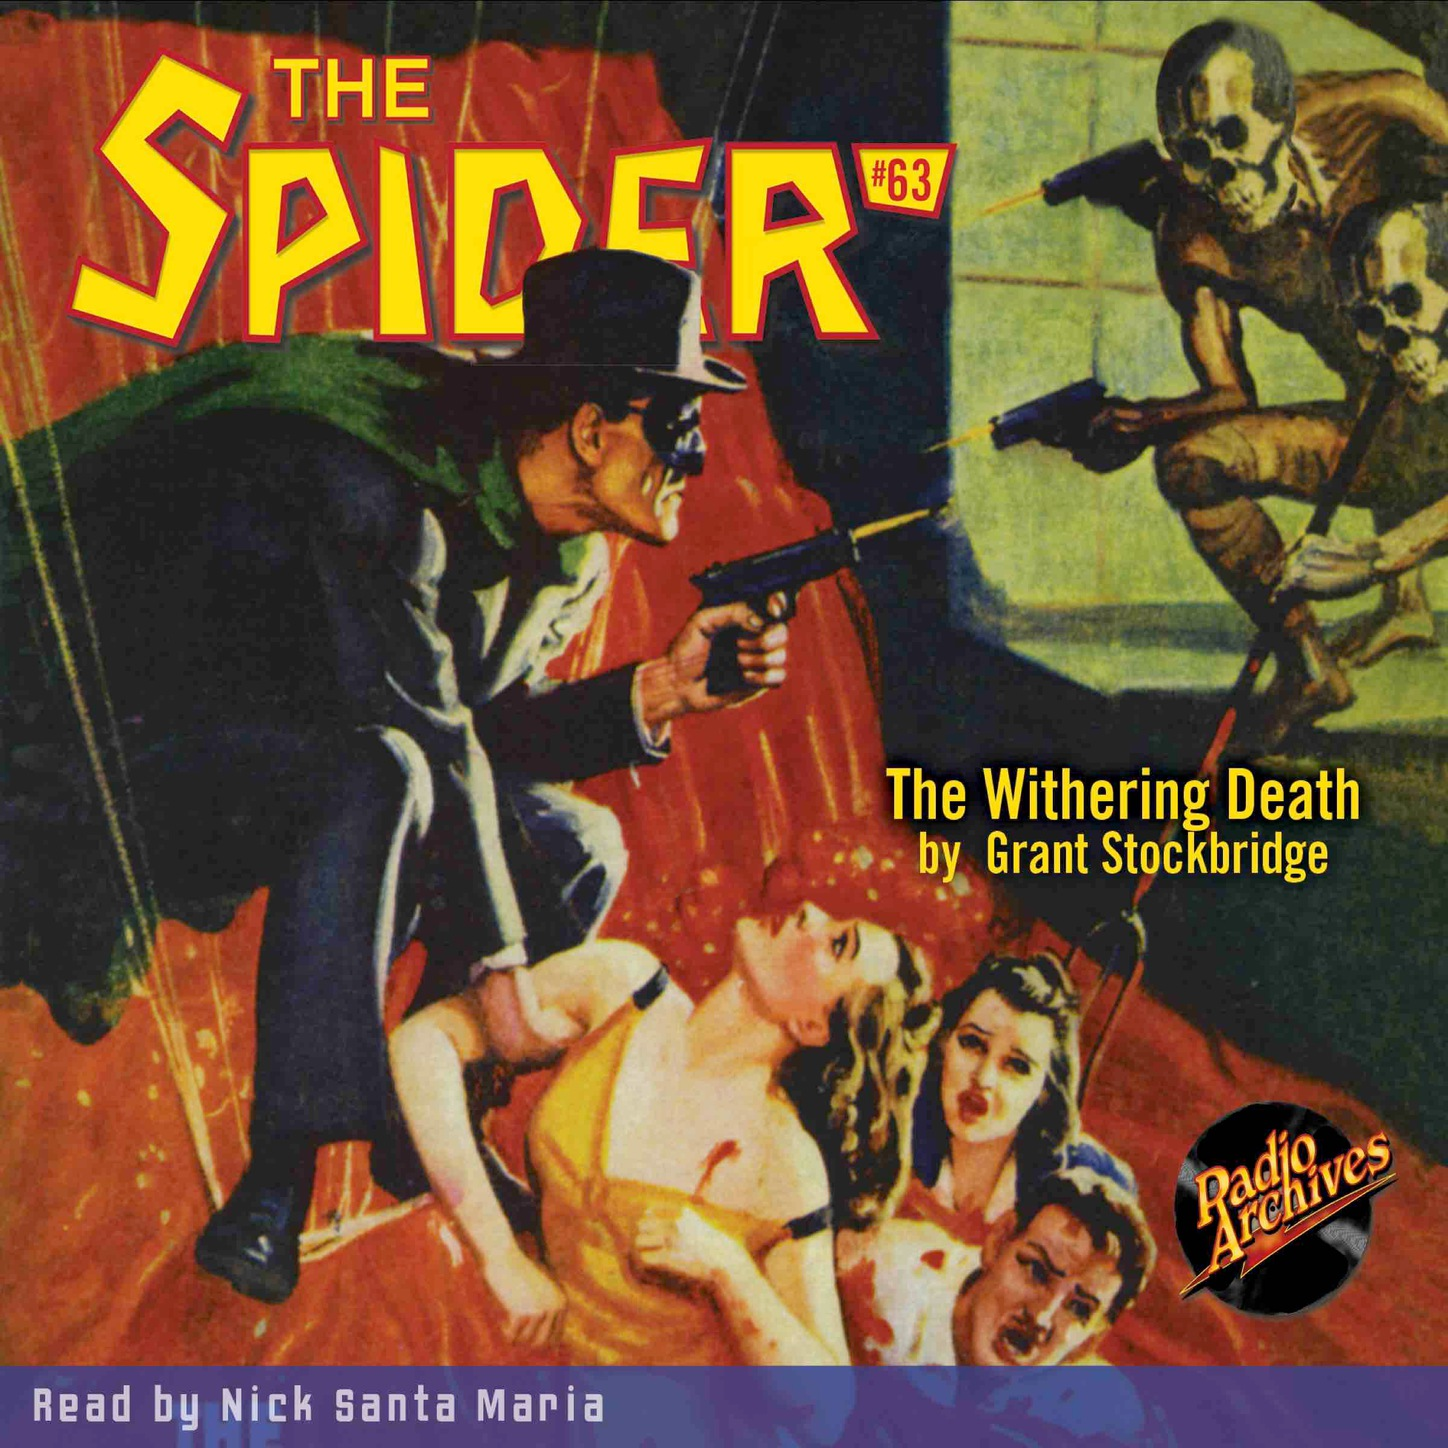 Grant Stockbridge The Withering Death - The Spider 63 (Unabridged) harold ward the shriveling murders doctor death 3 unabridged